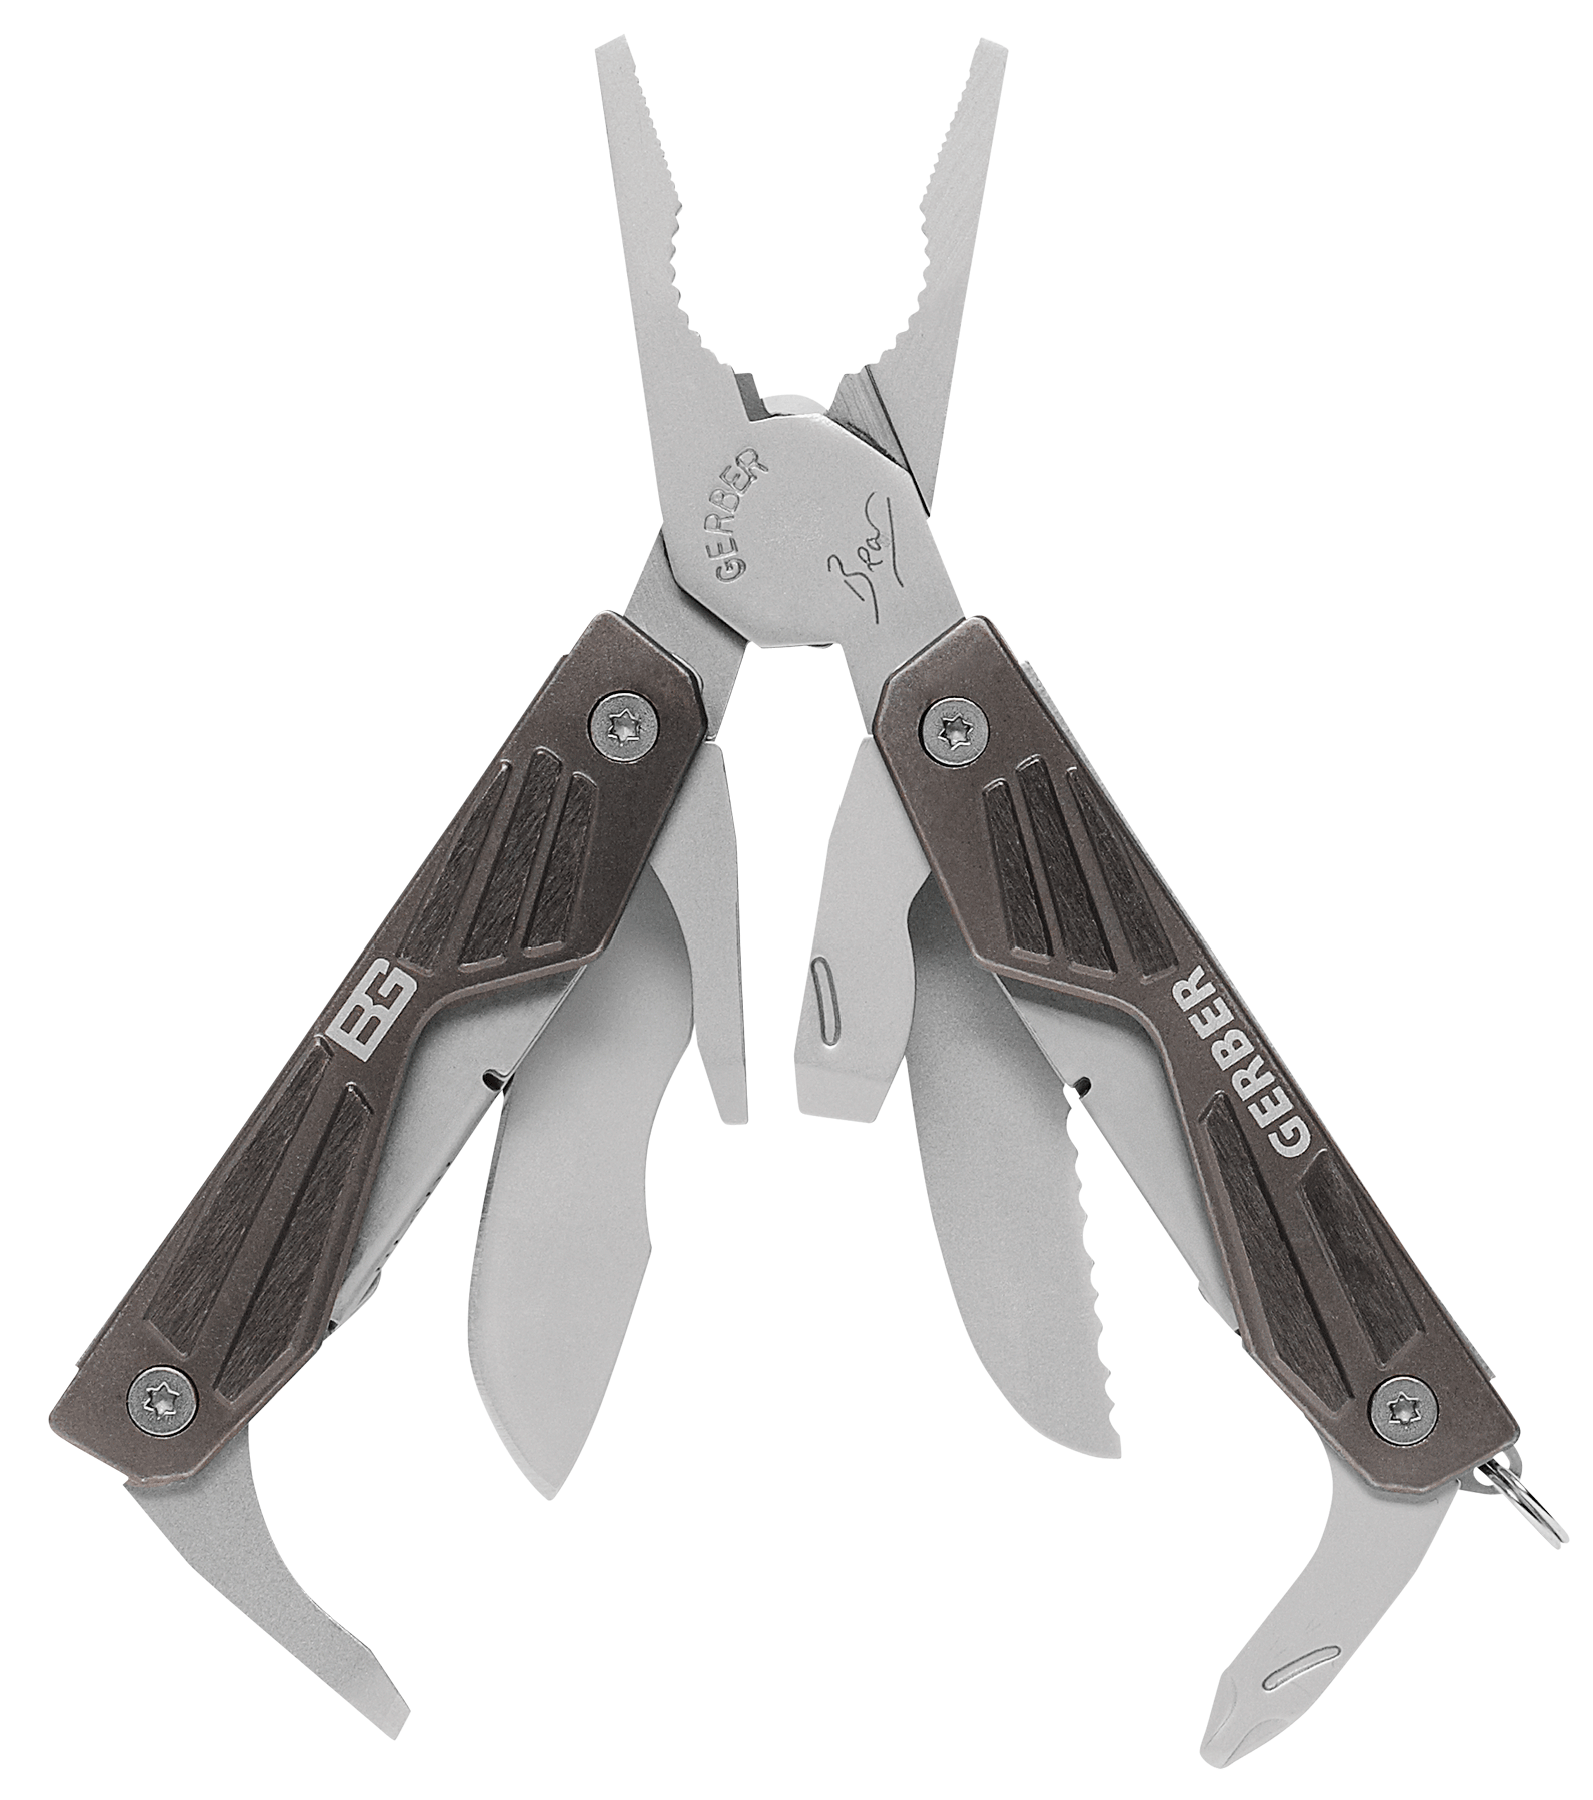 Gerber 000750 BG Multi-Tool  10 Piece Set Blade Brown Synthetic